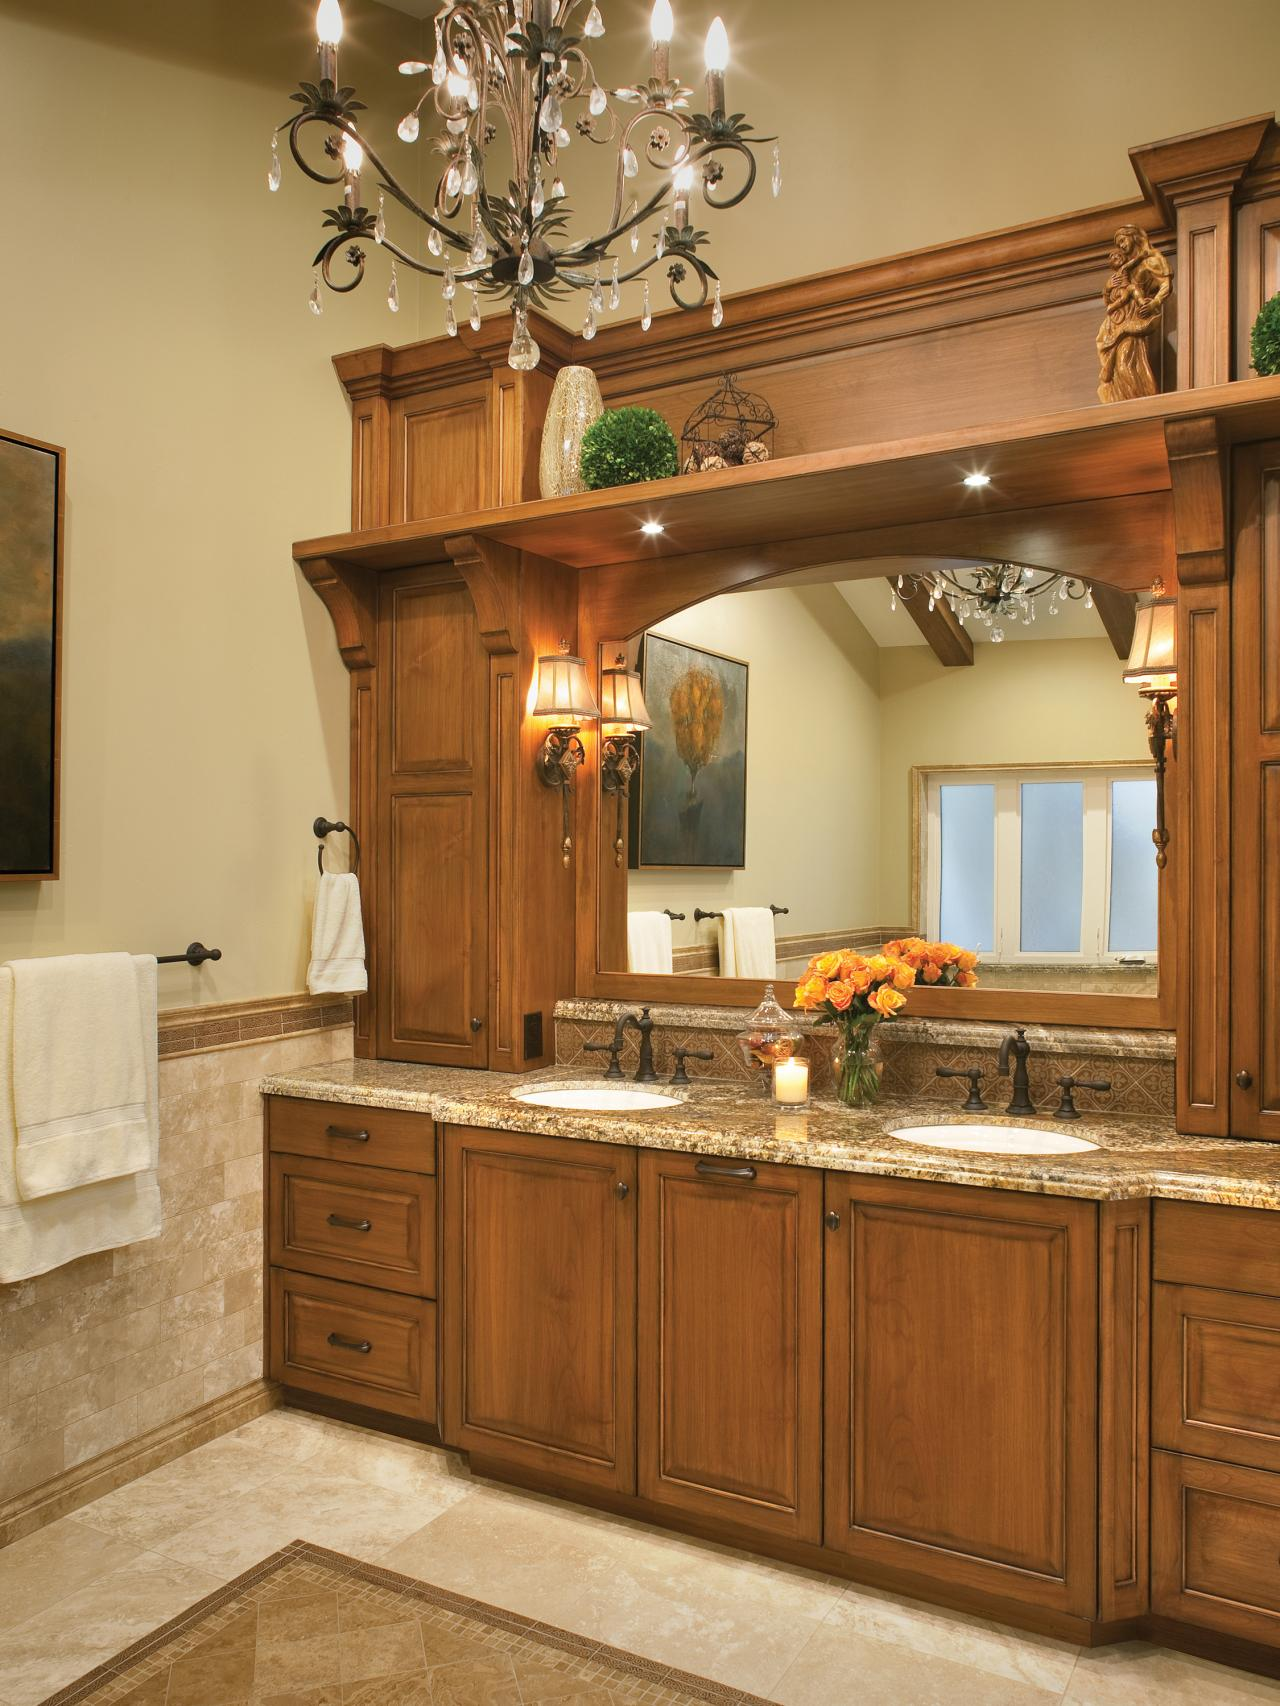 Traditional bathroom designs hgtv - Pictures of bathroom designs ...